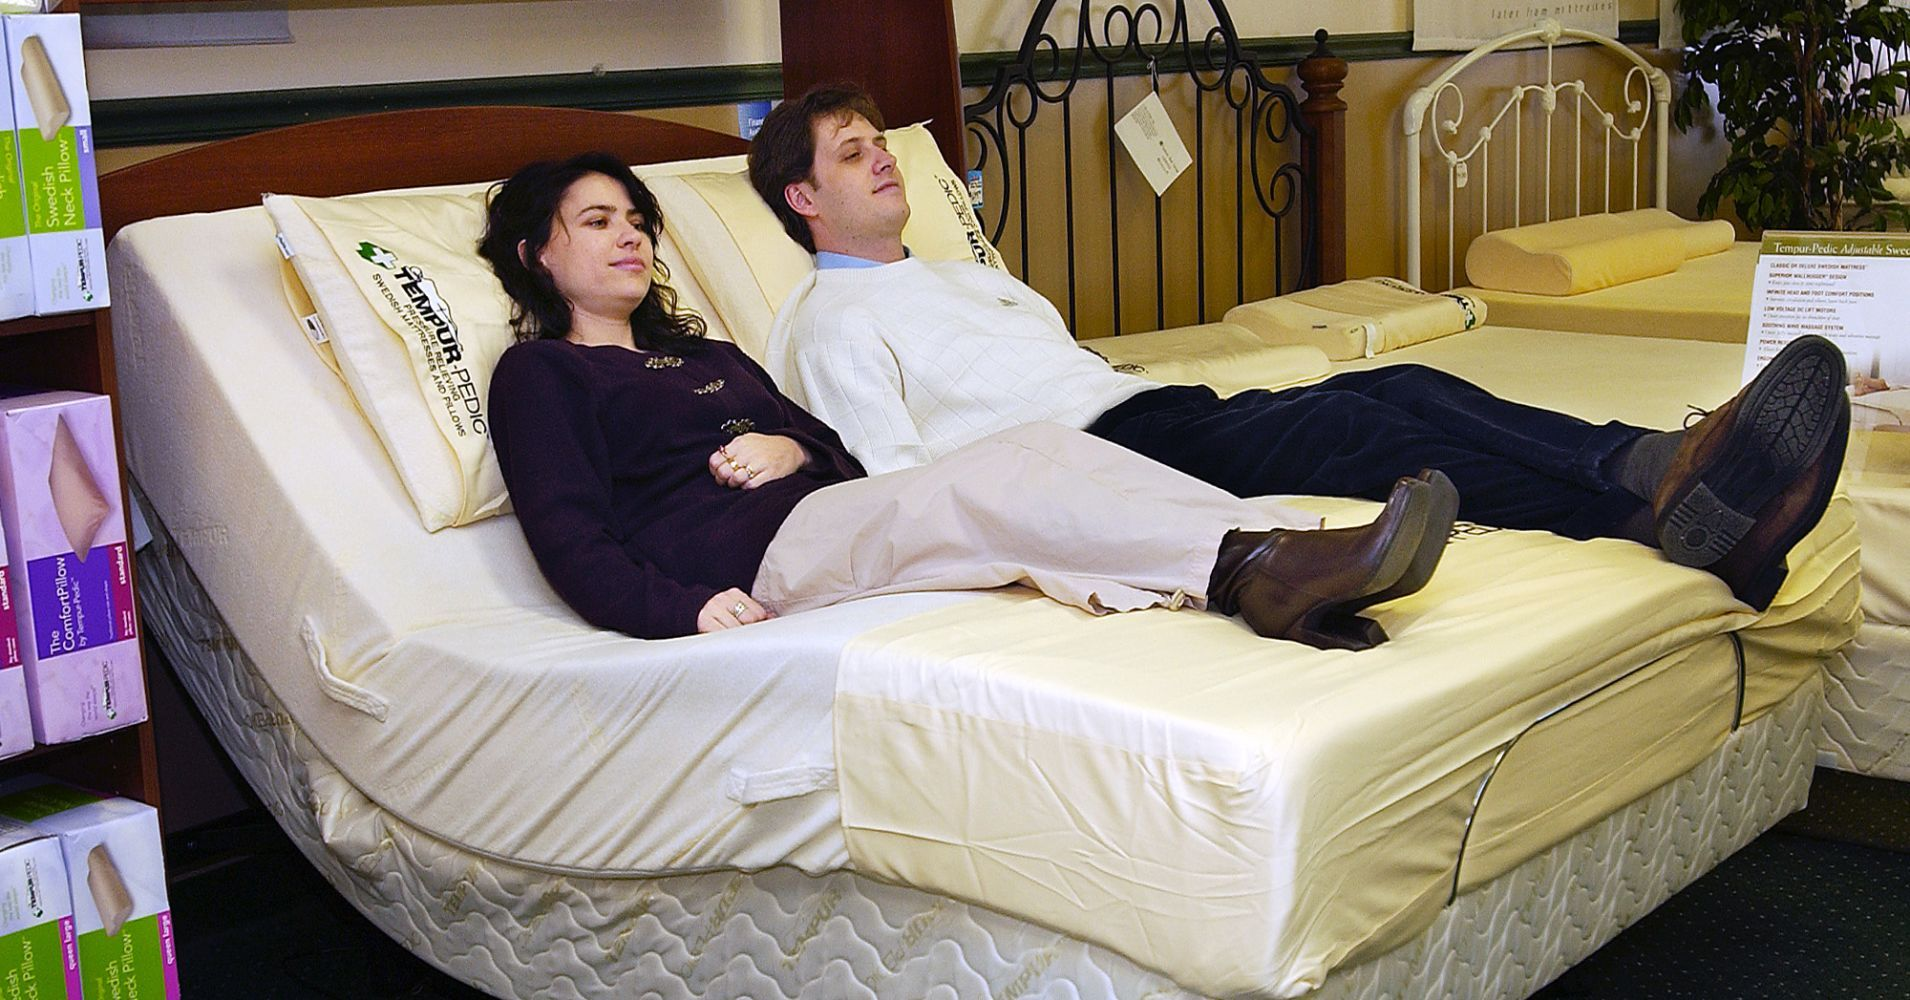 Tempur Sealy Jumps 9 On Report Mattress Firm Plans To File For Bankruptcy Firm Mattress Mattress Sealy